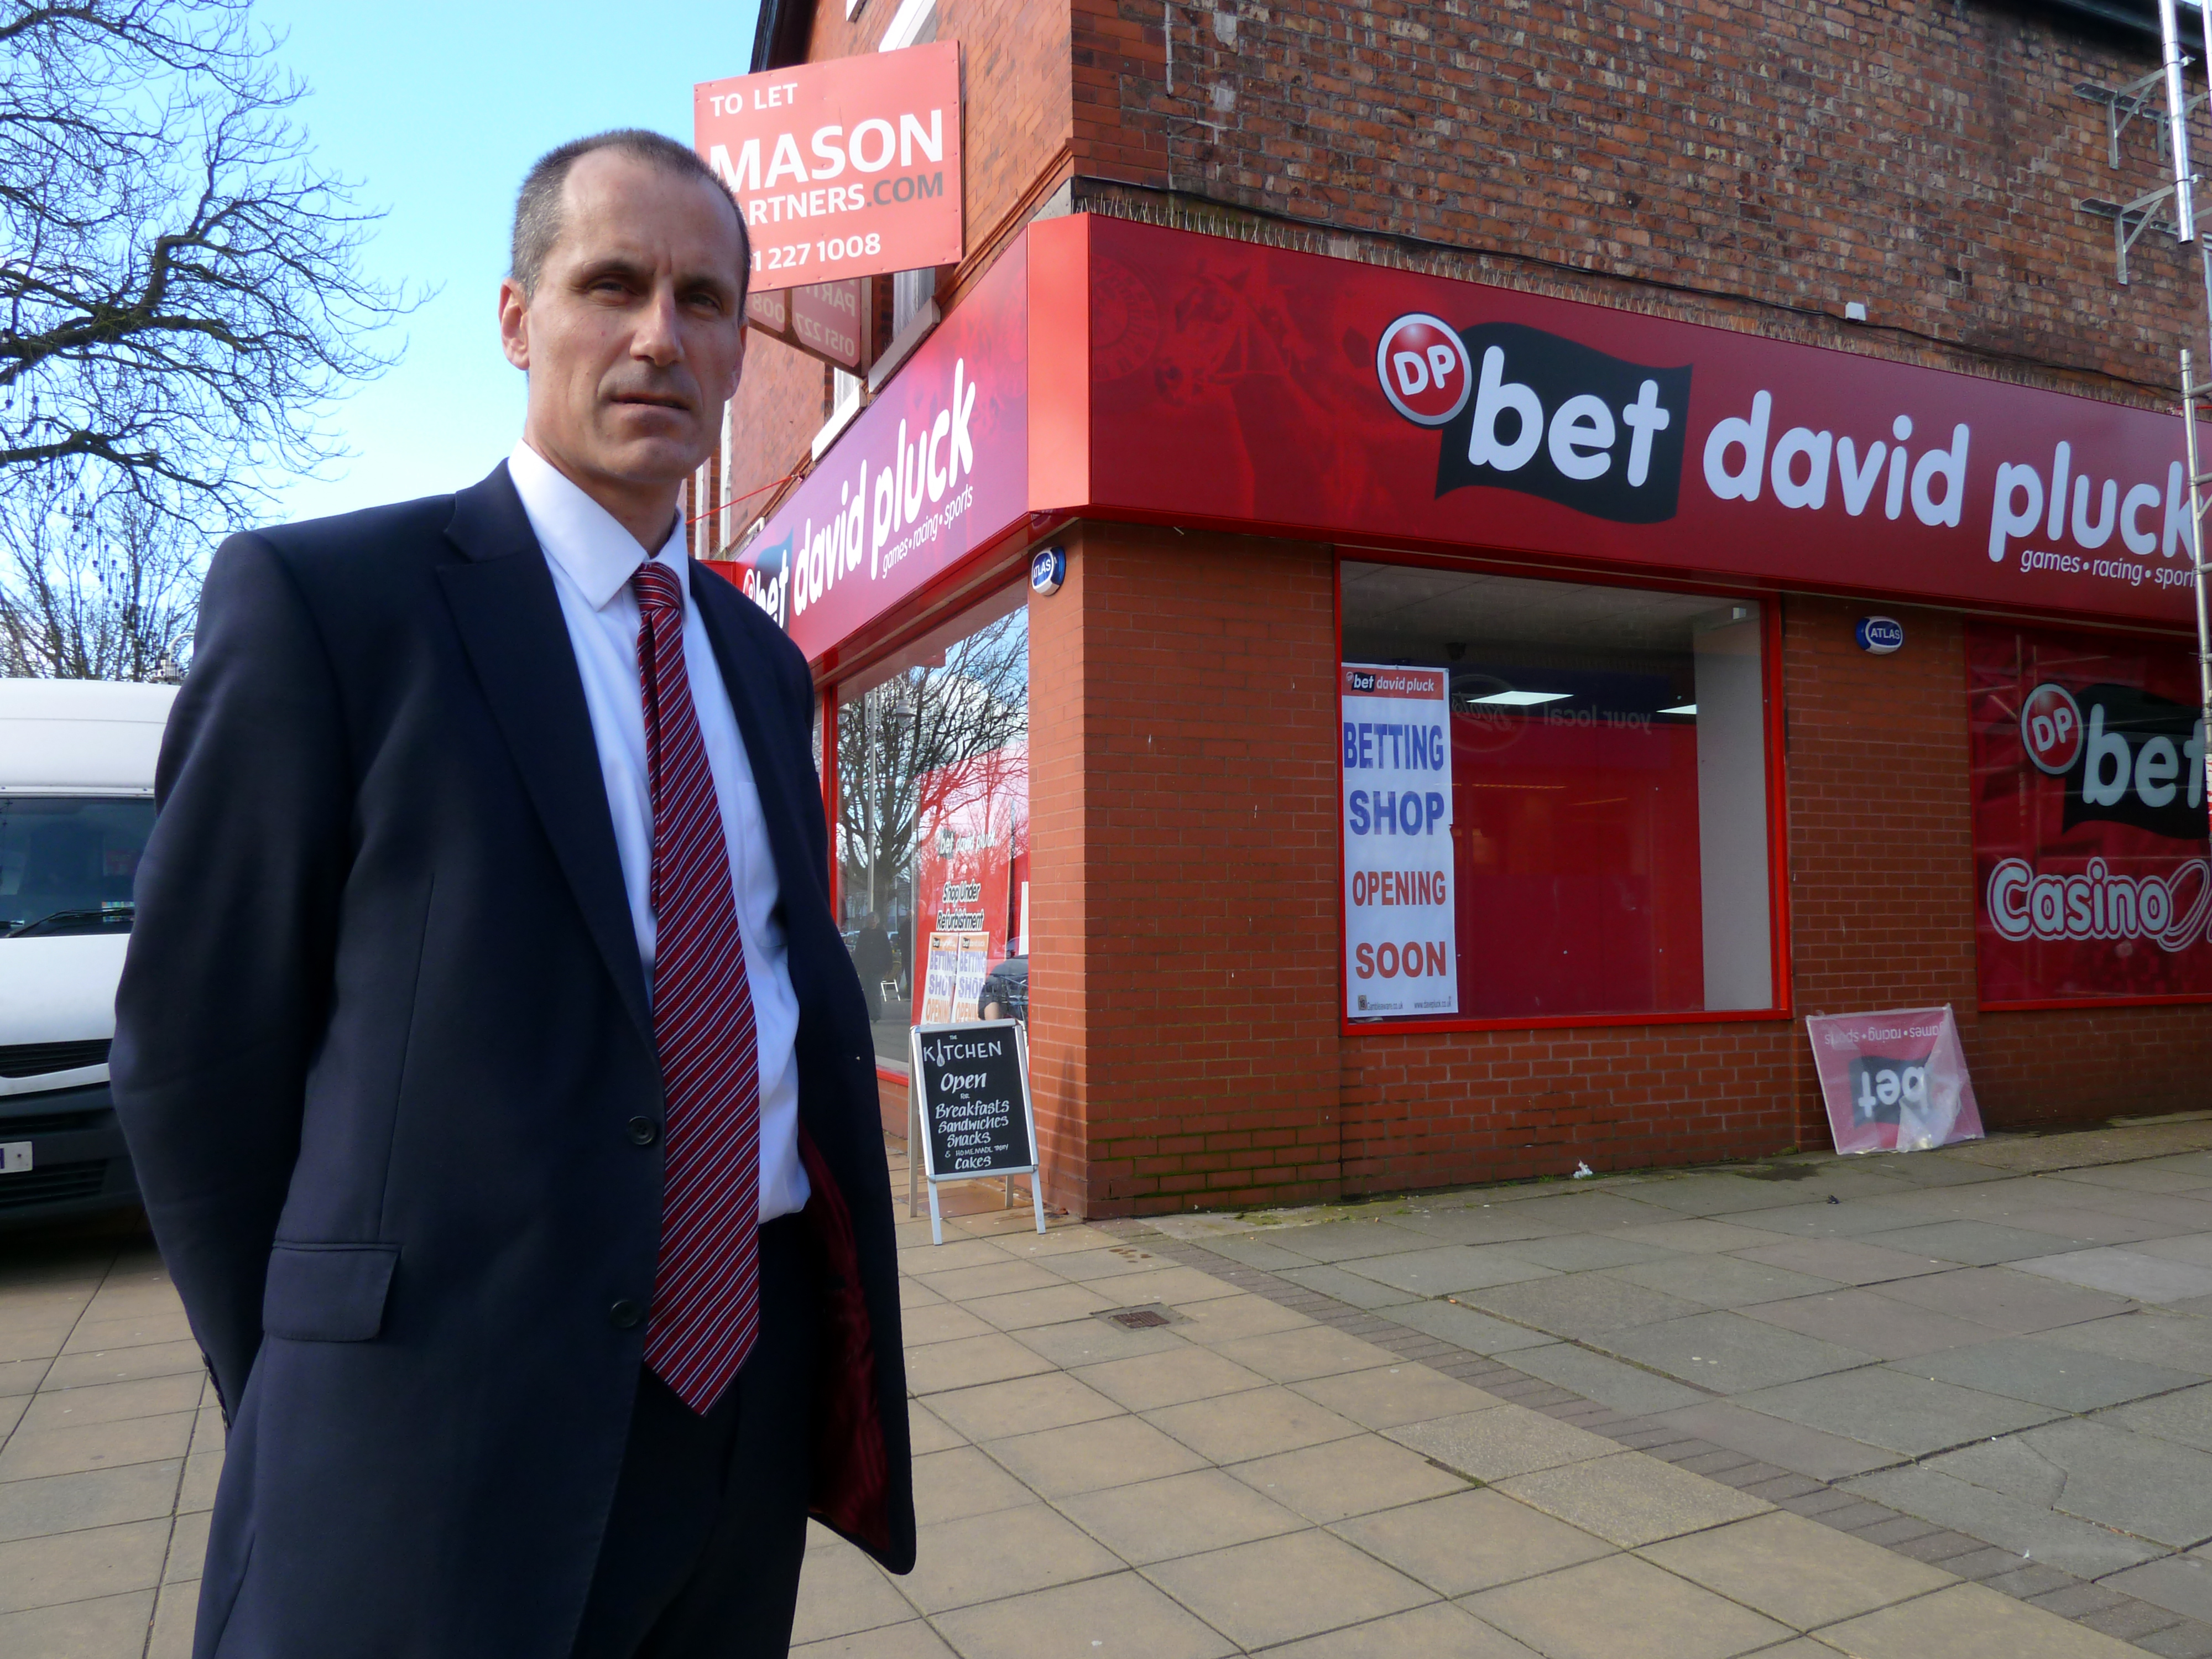 Sefton Central Labour MP Bill Esterson outside the new betting shop in Formby Village.